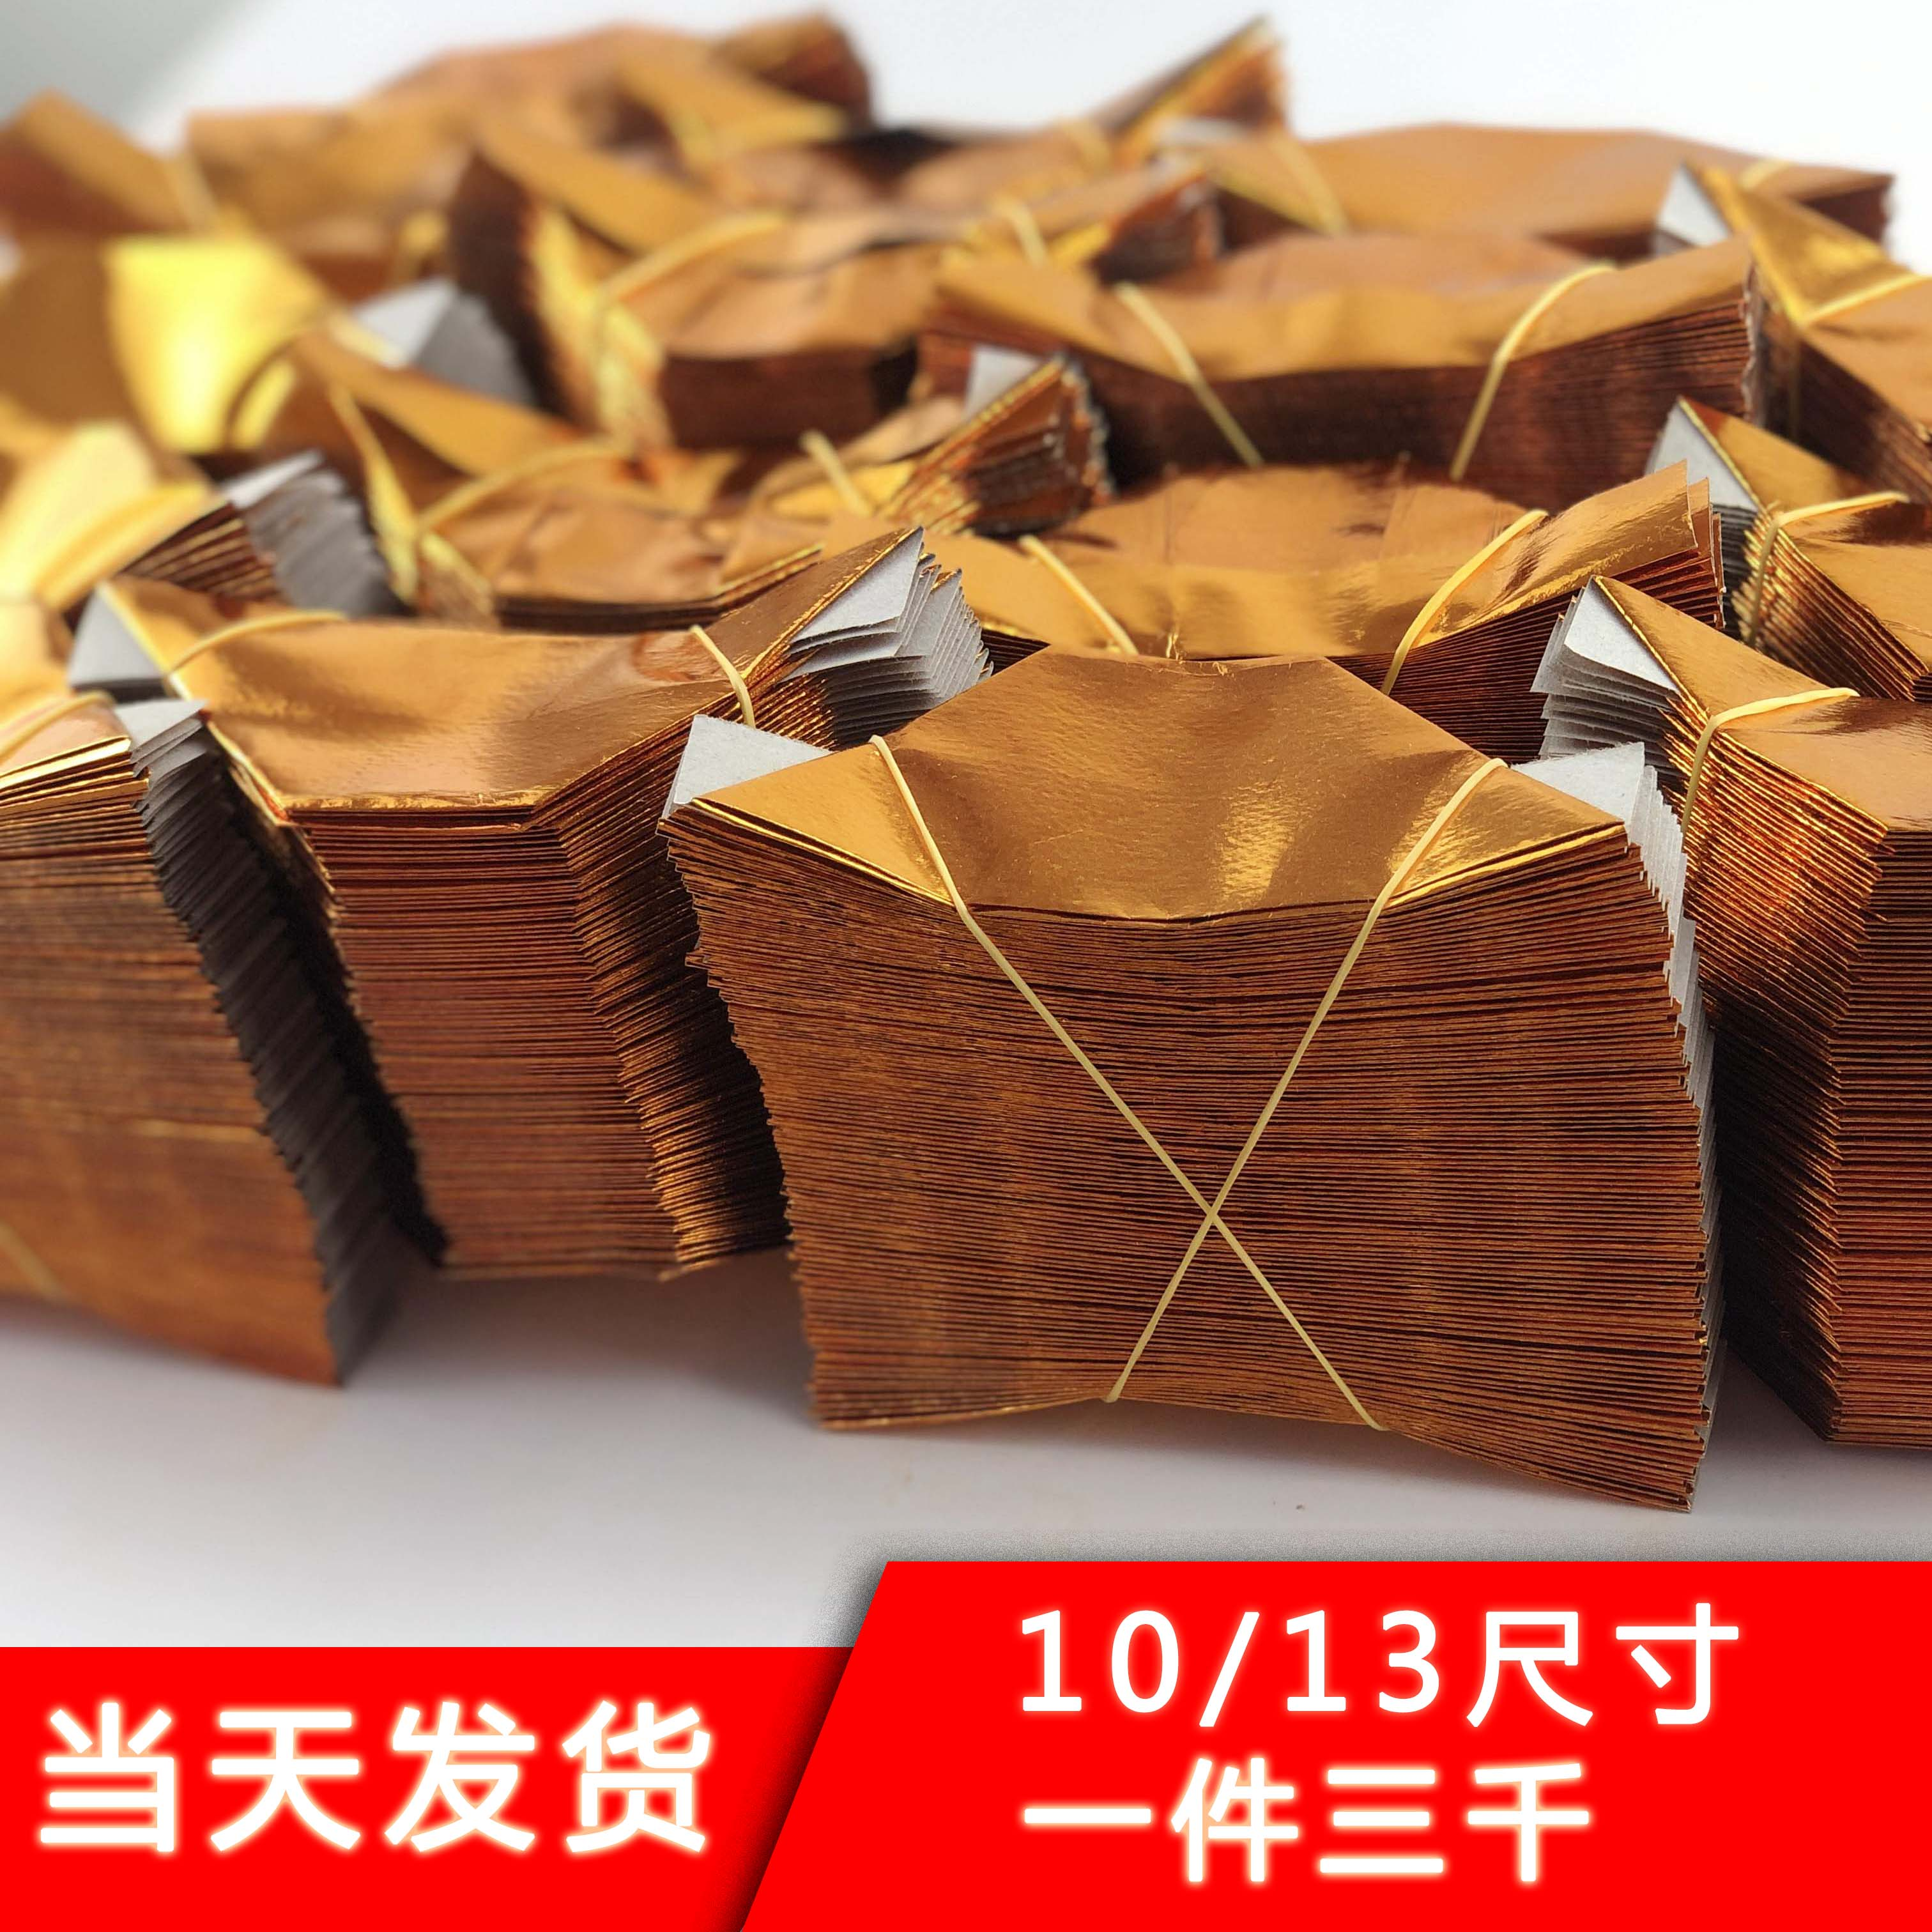 Jinyuanbao paper semi-finished Qingming Festival tin poo paper gold silver 3000 hand-burned paper on the grave paper sacrifice supplies